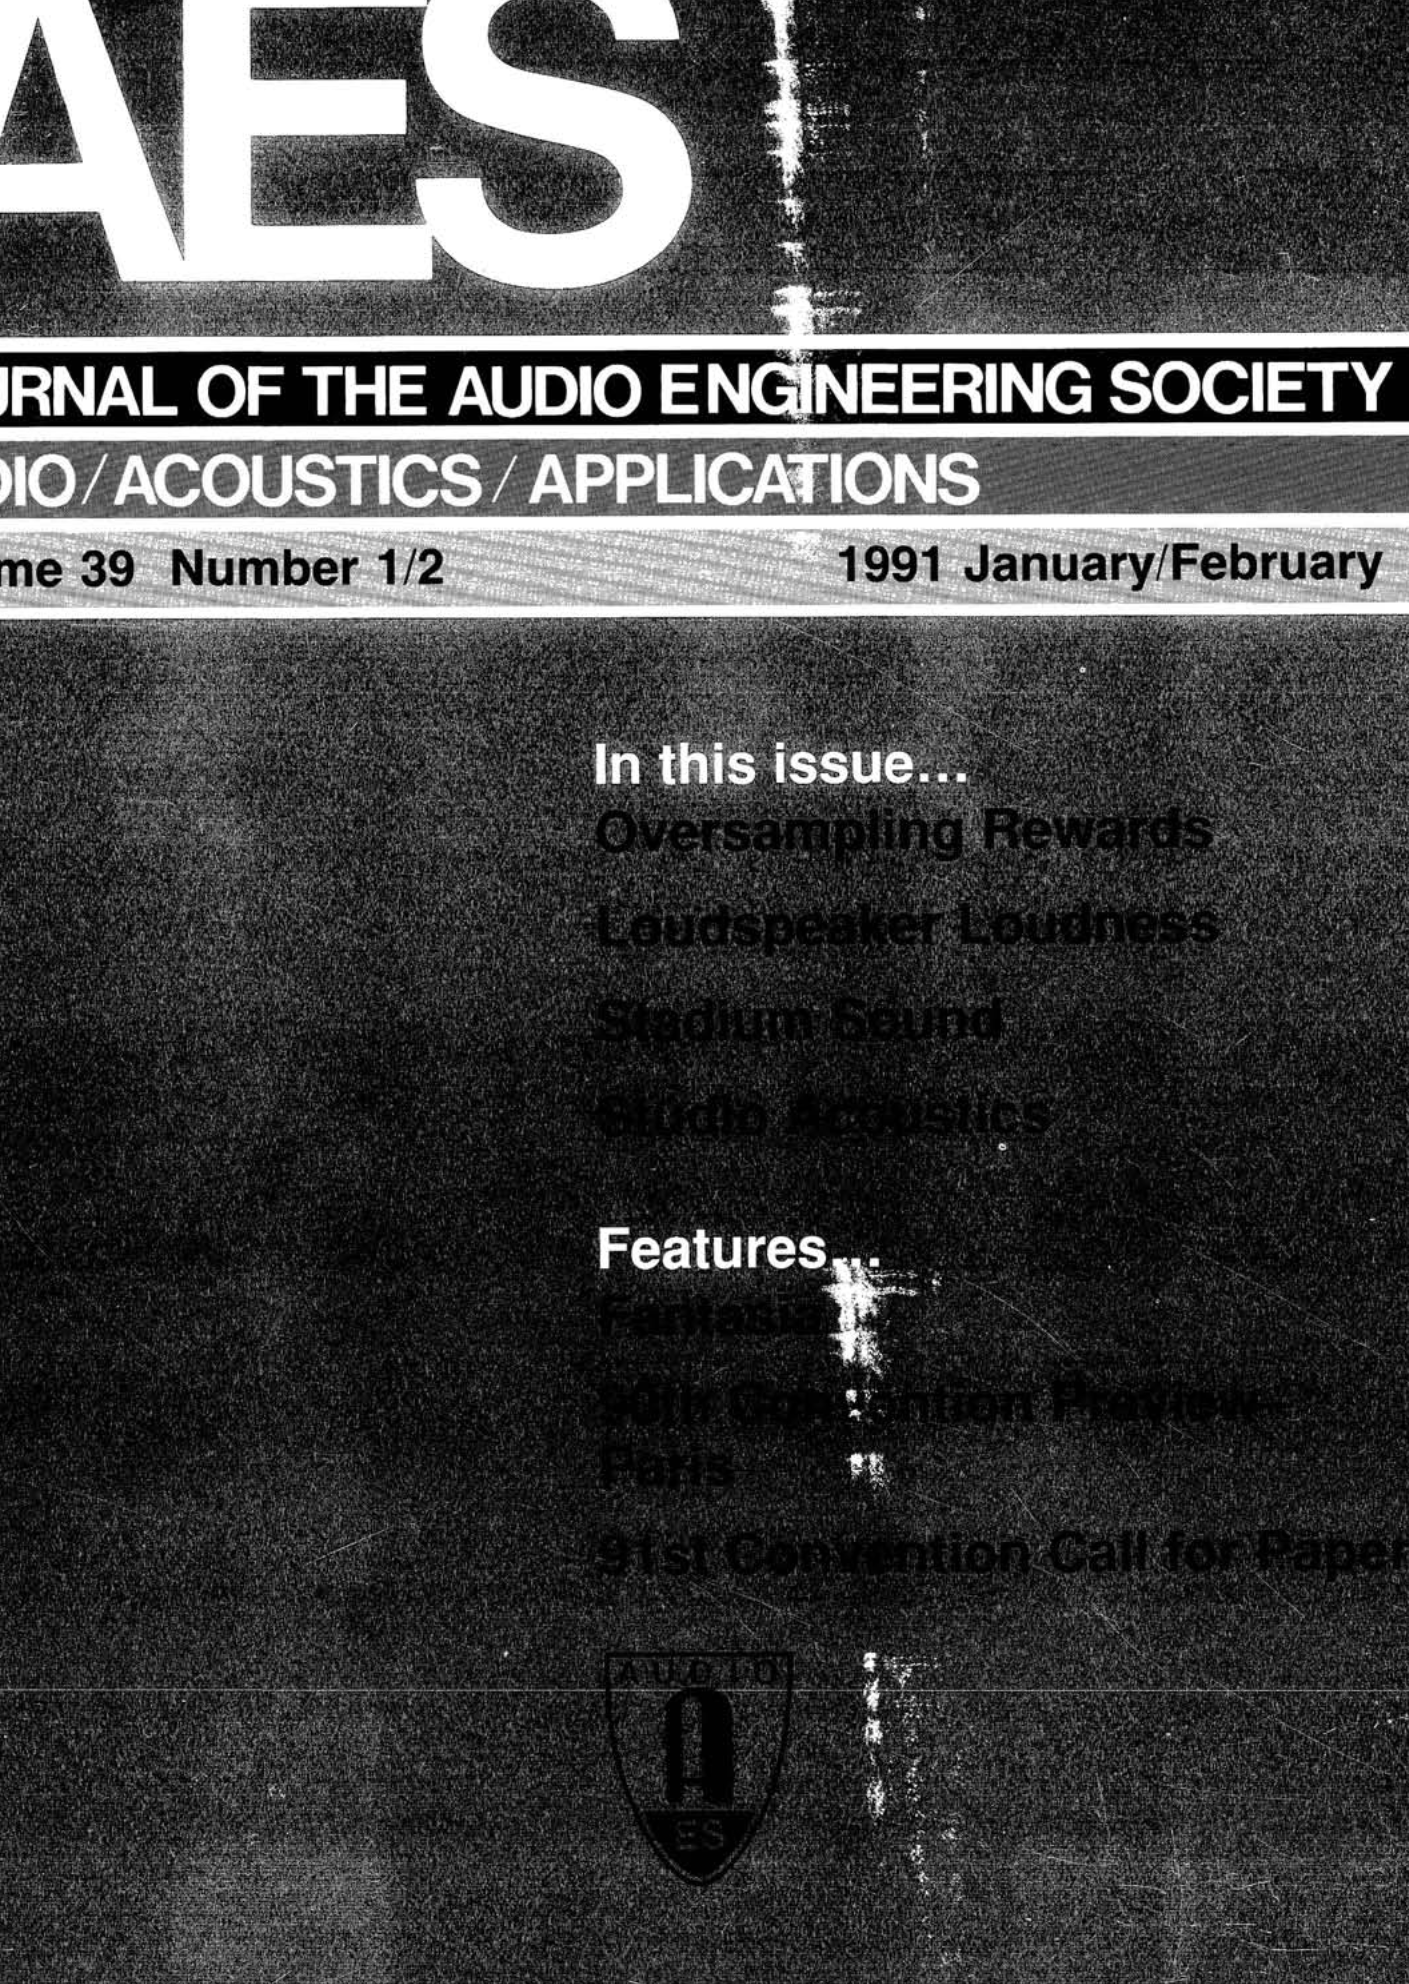 Aes E Library Complete Journal Volume 39 Issue 1 2 Band Spectrum Analyzer Circuit Using Op Amps Scorpionz